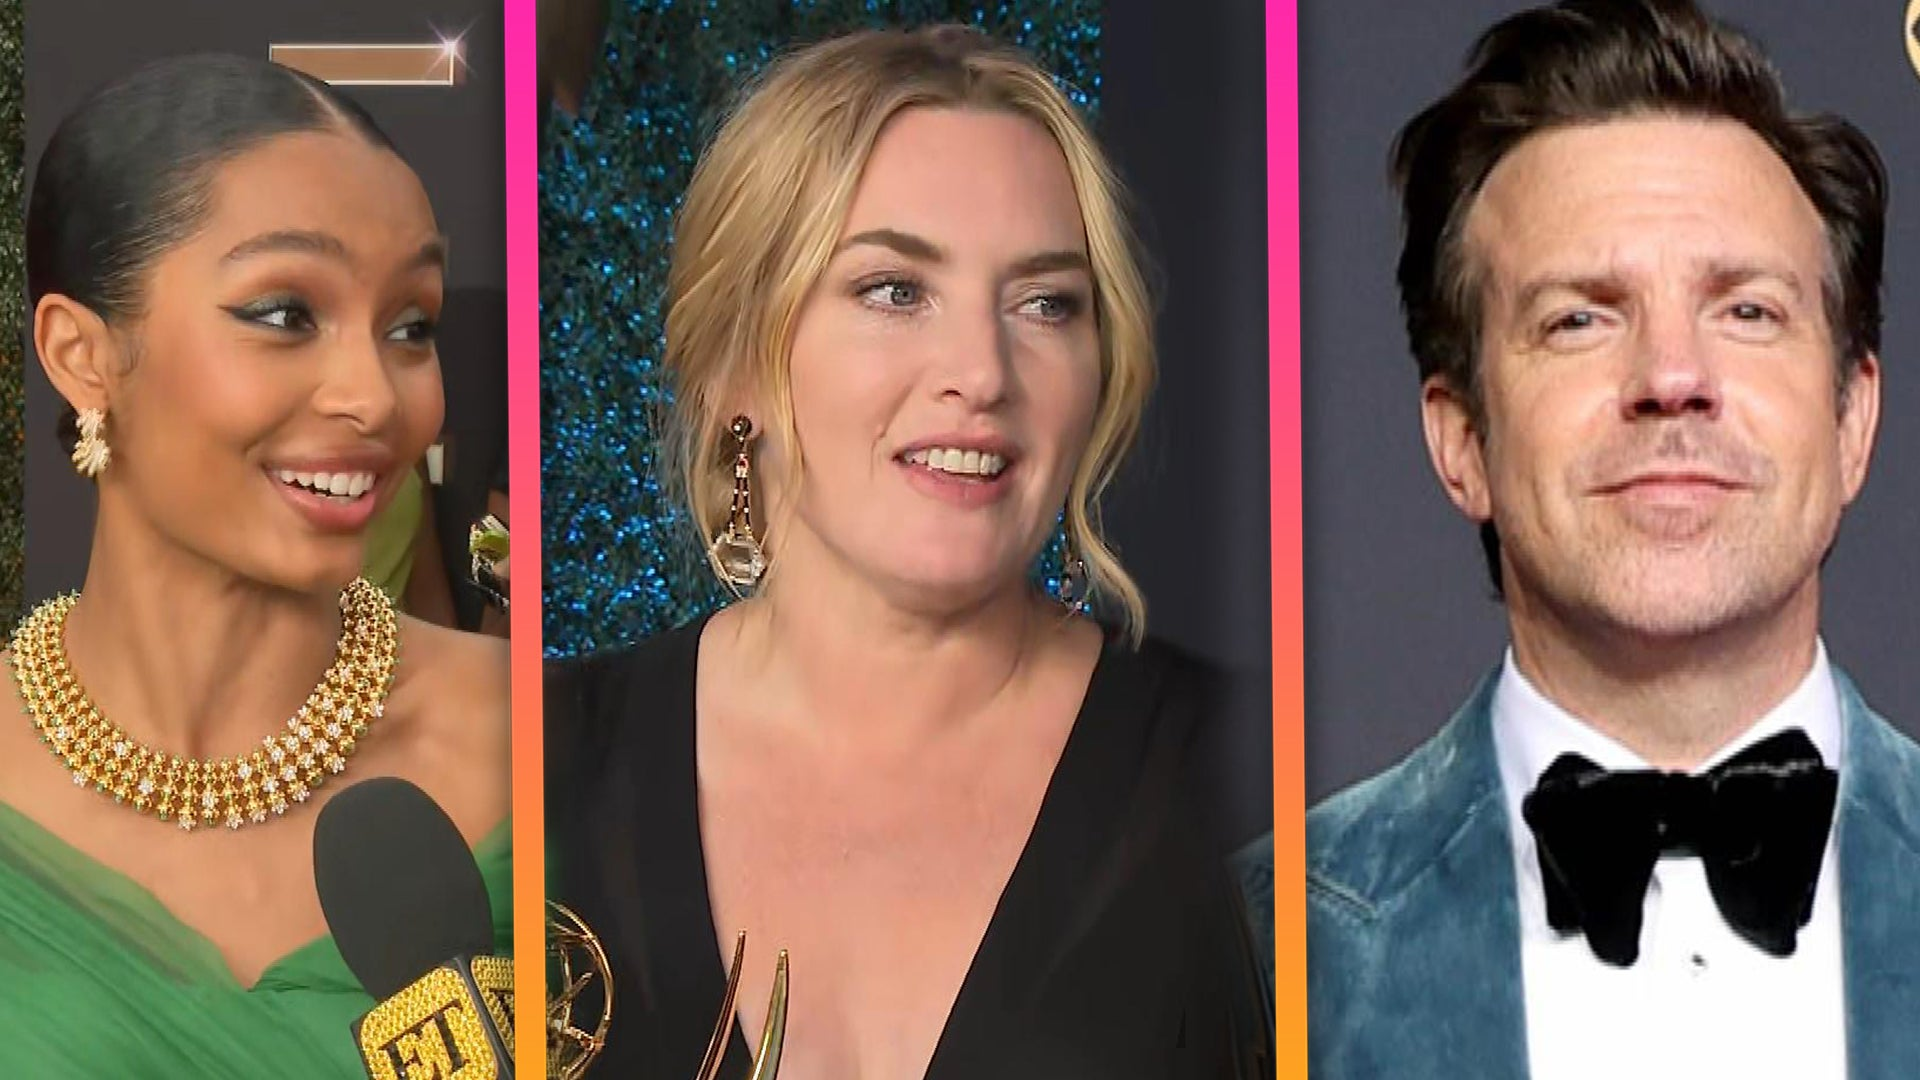 Emmys 2021: All the Must-See Moments You Missed